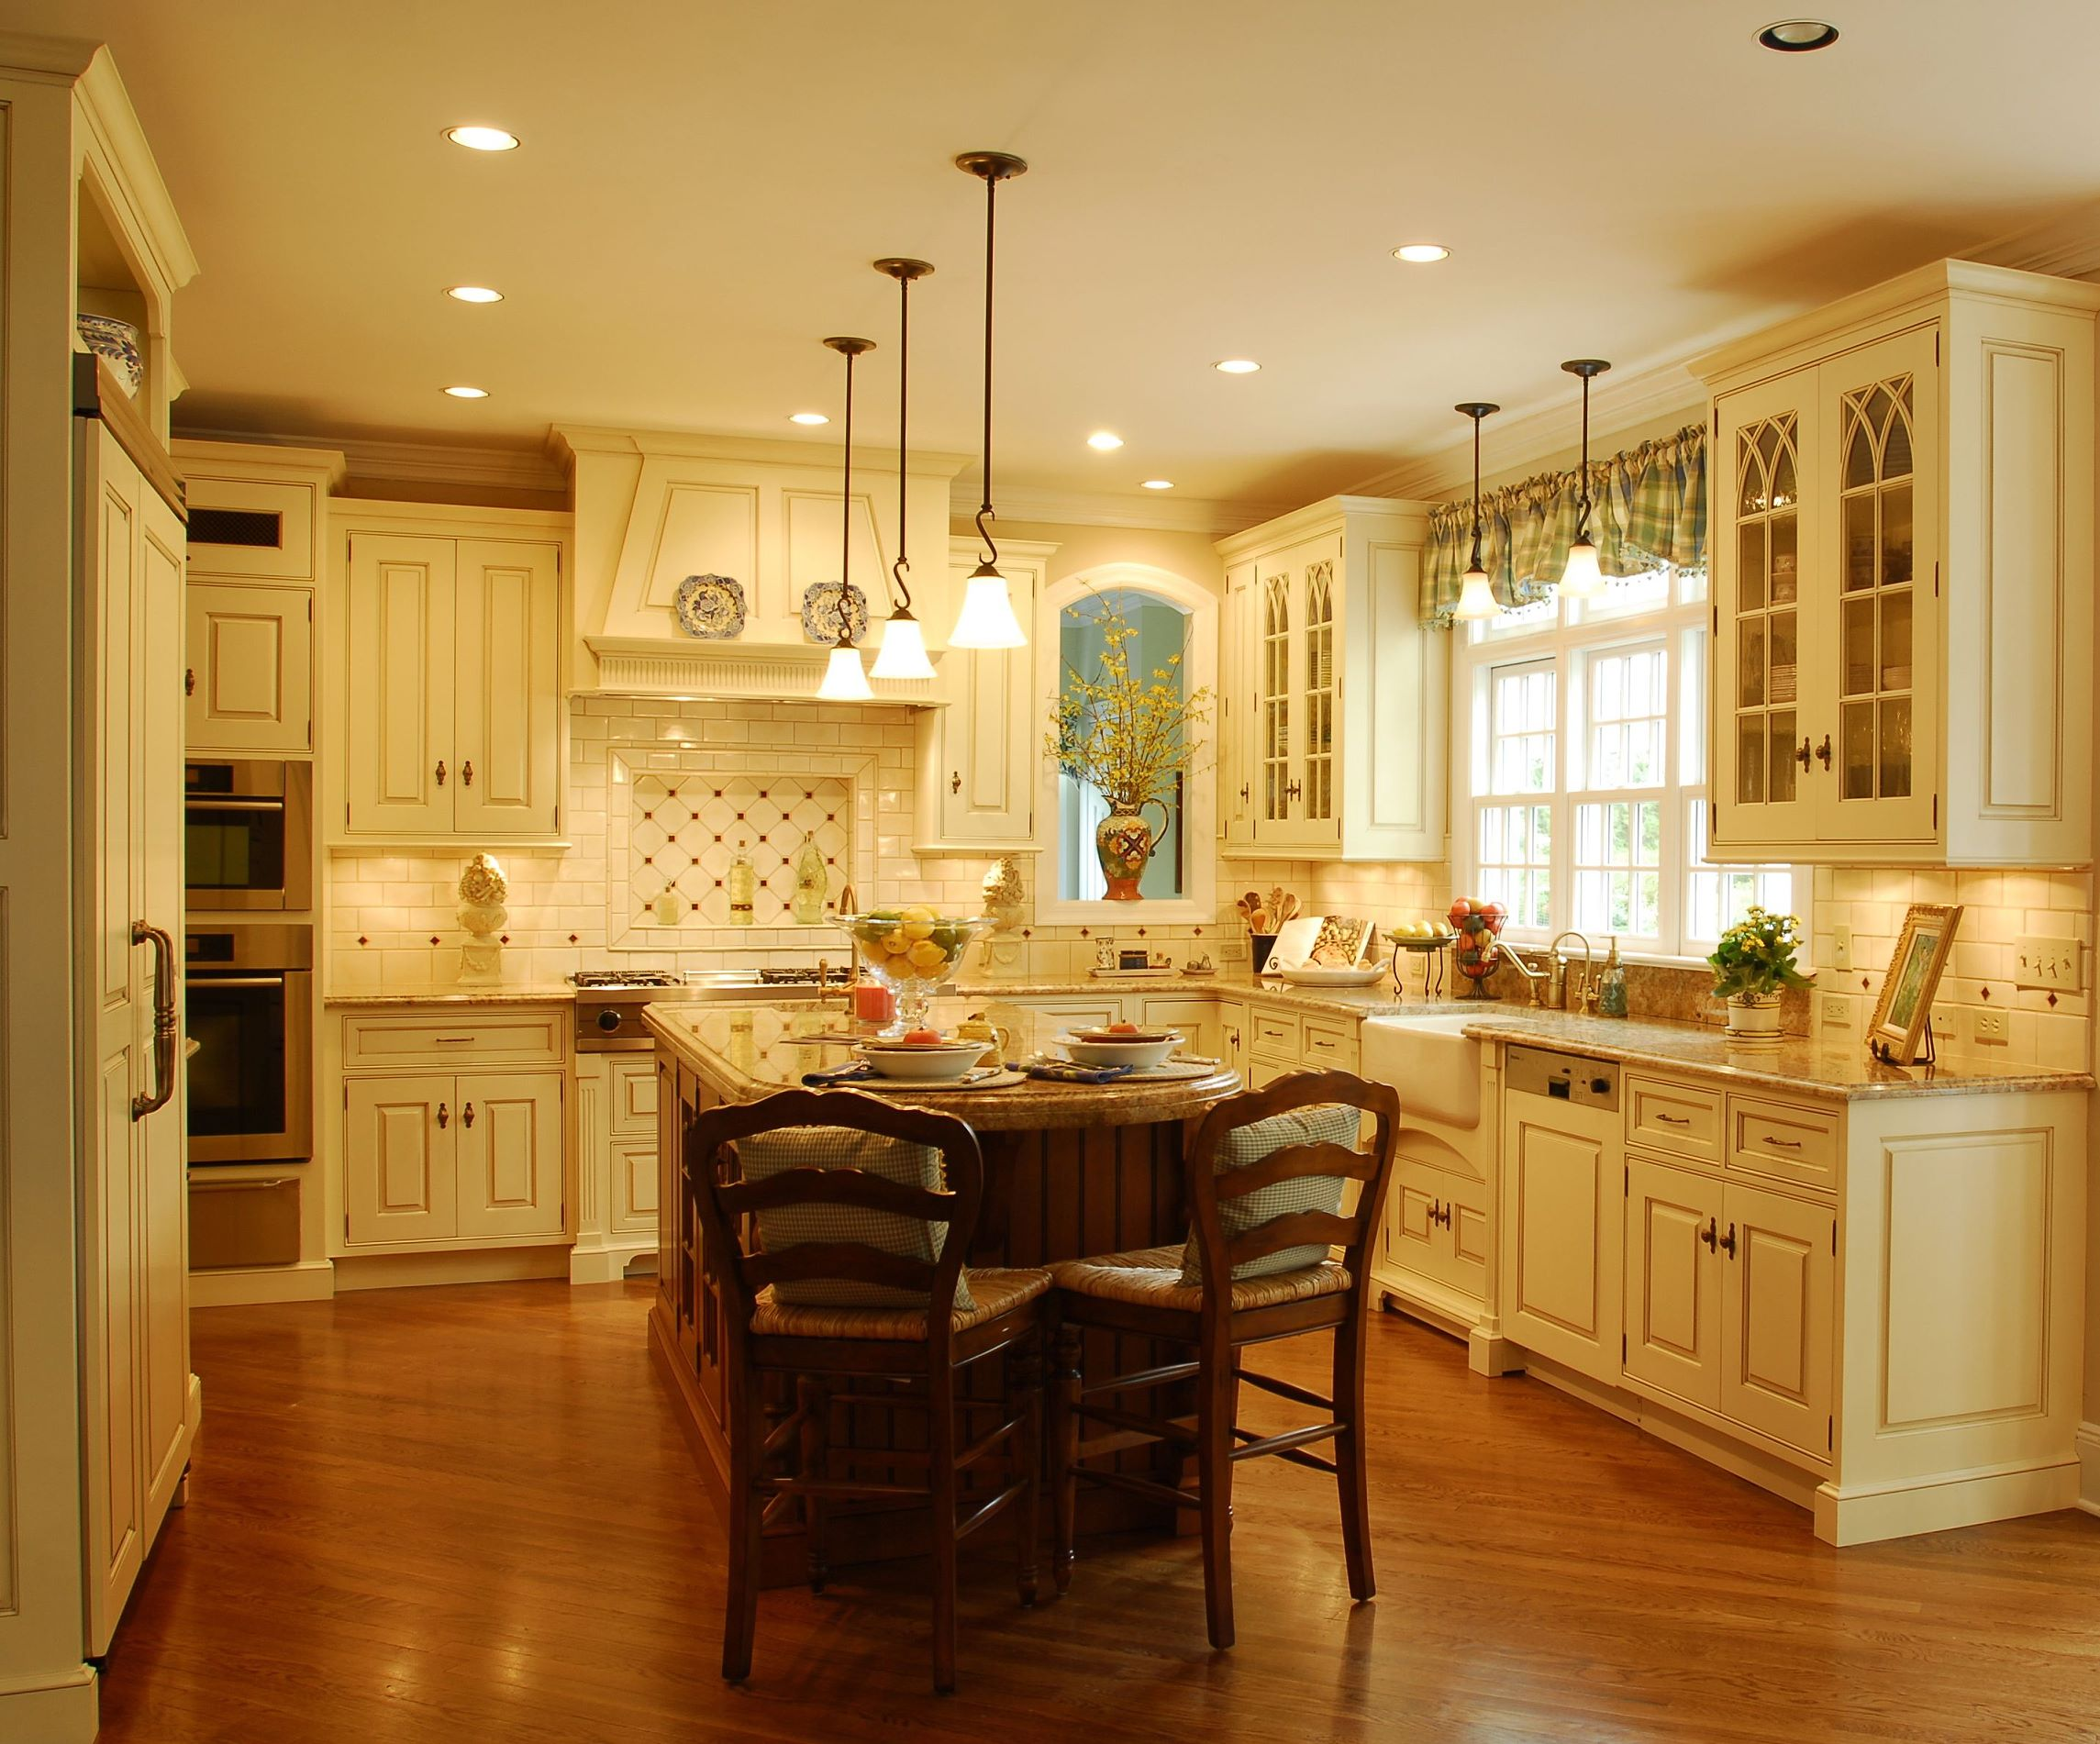 Contemporary Traditional Kitchen romanian vs american tradional kitchen - homemajestic